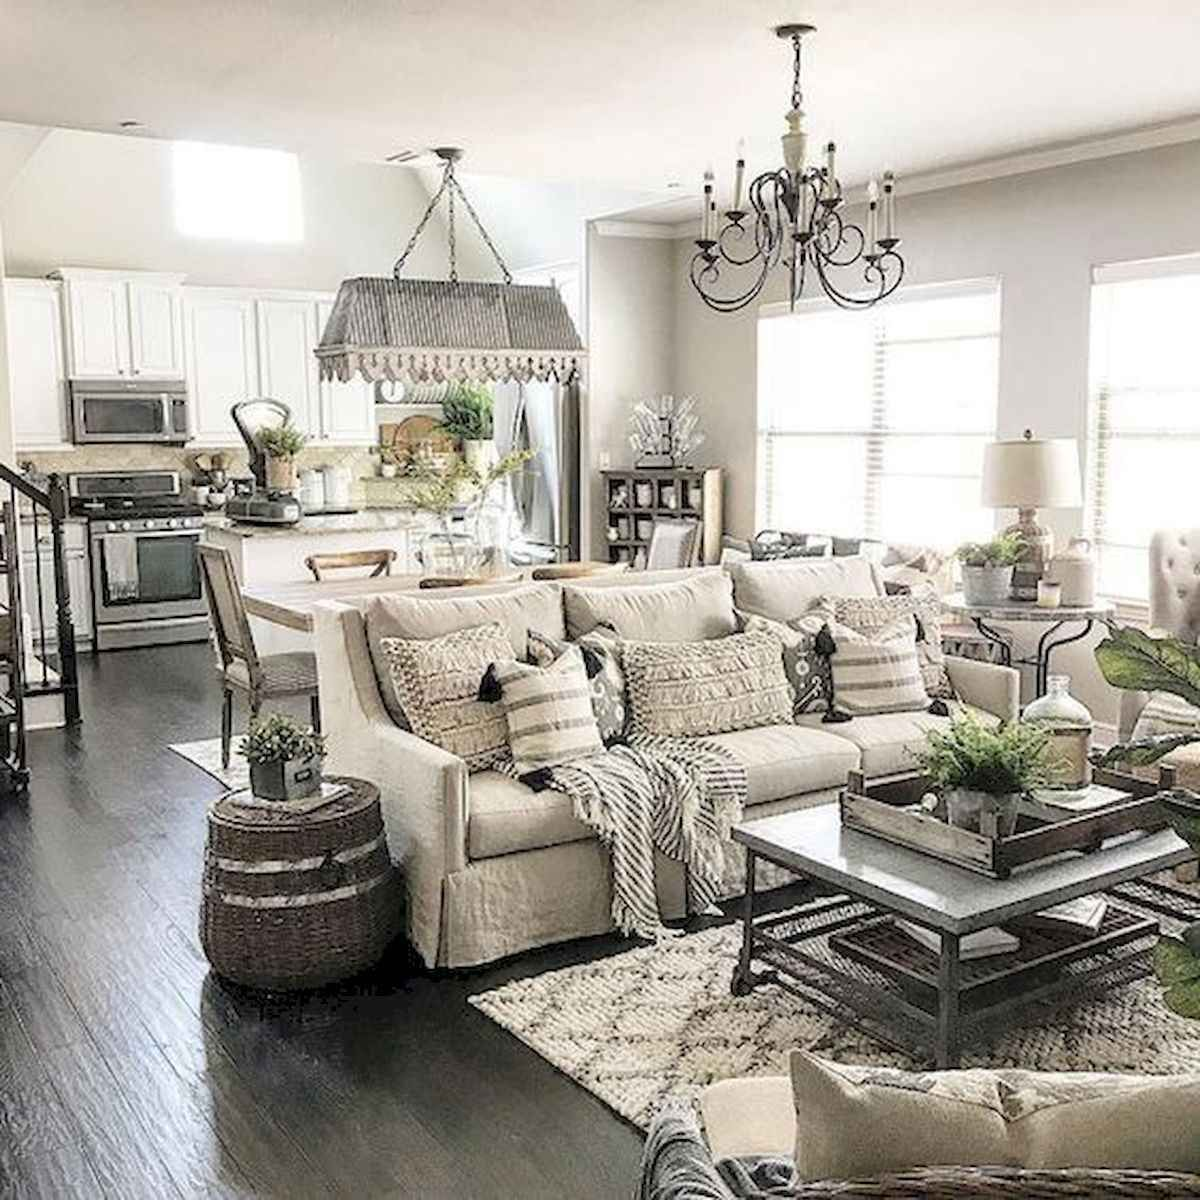 100 Perfect Farmhouse Living Room Decor Ideas And Remodel Page 98 Of 105 Af Farm House Living Room Modern Farmhouse Living Room Farmhouse Decor Living Room